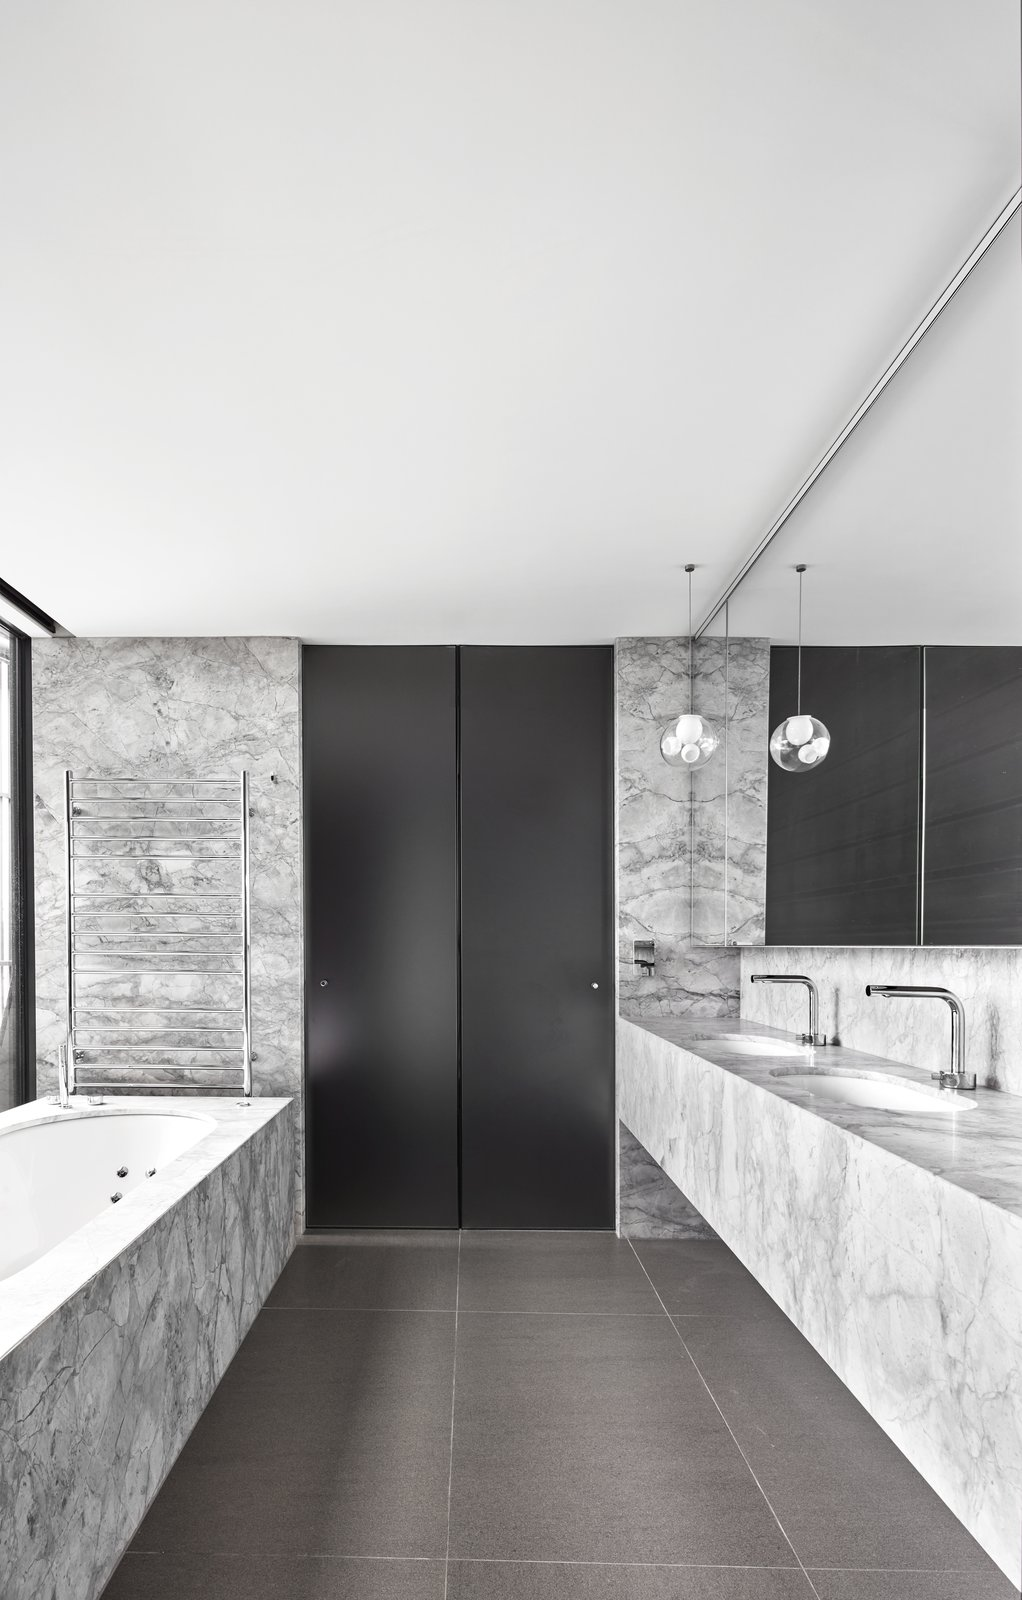 Bath, Soaking, Marble, Undermount, Pendant, Marble, and Drop In A peek at the bathroom finished with plenty of natural stone.  Best Bath Marble Drop In Undermount Soaking Photos from An Old Kit Home Is Transformed Into a Multi-Generational Abode